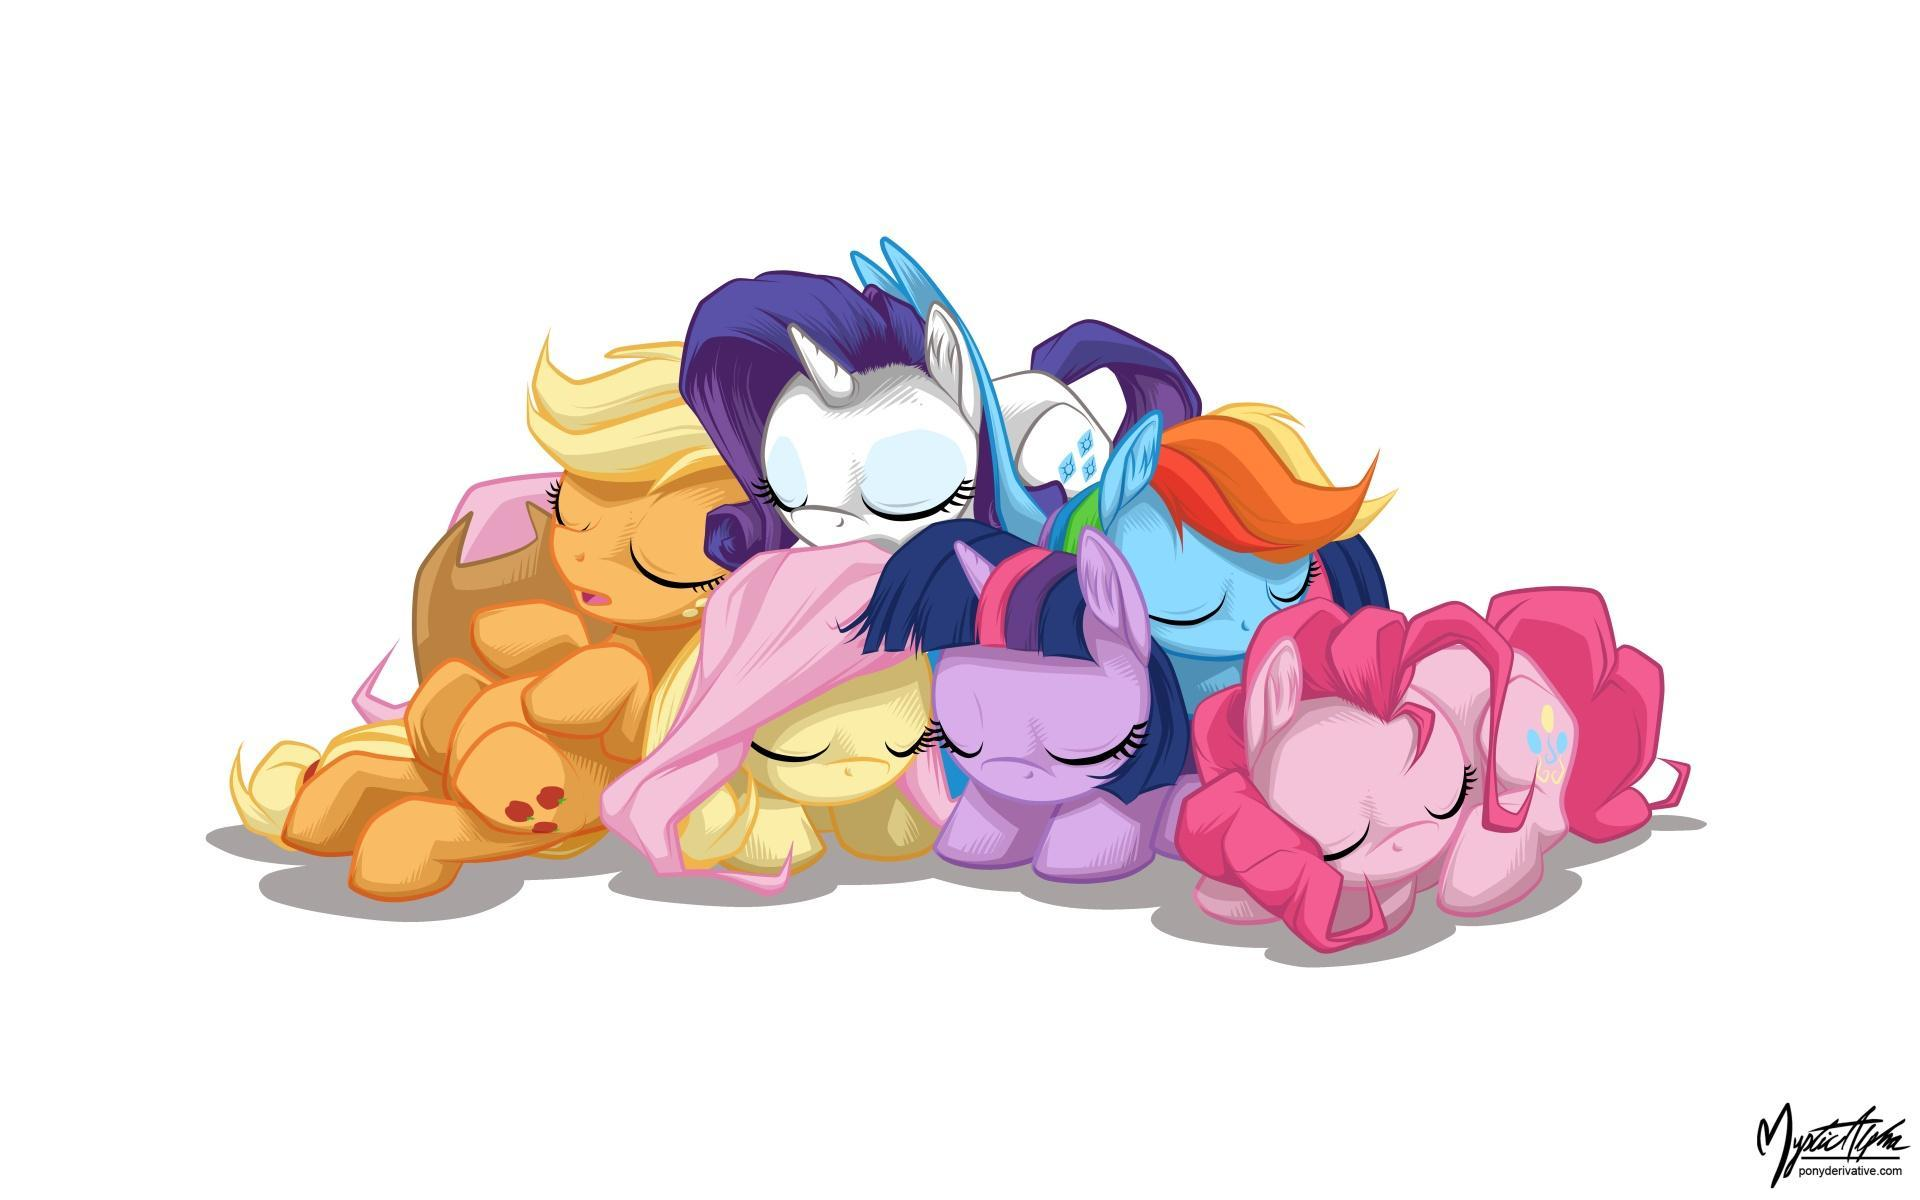 Who is best mane 6?